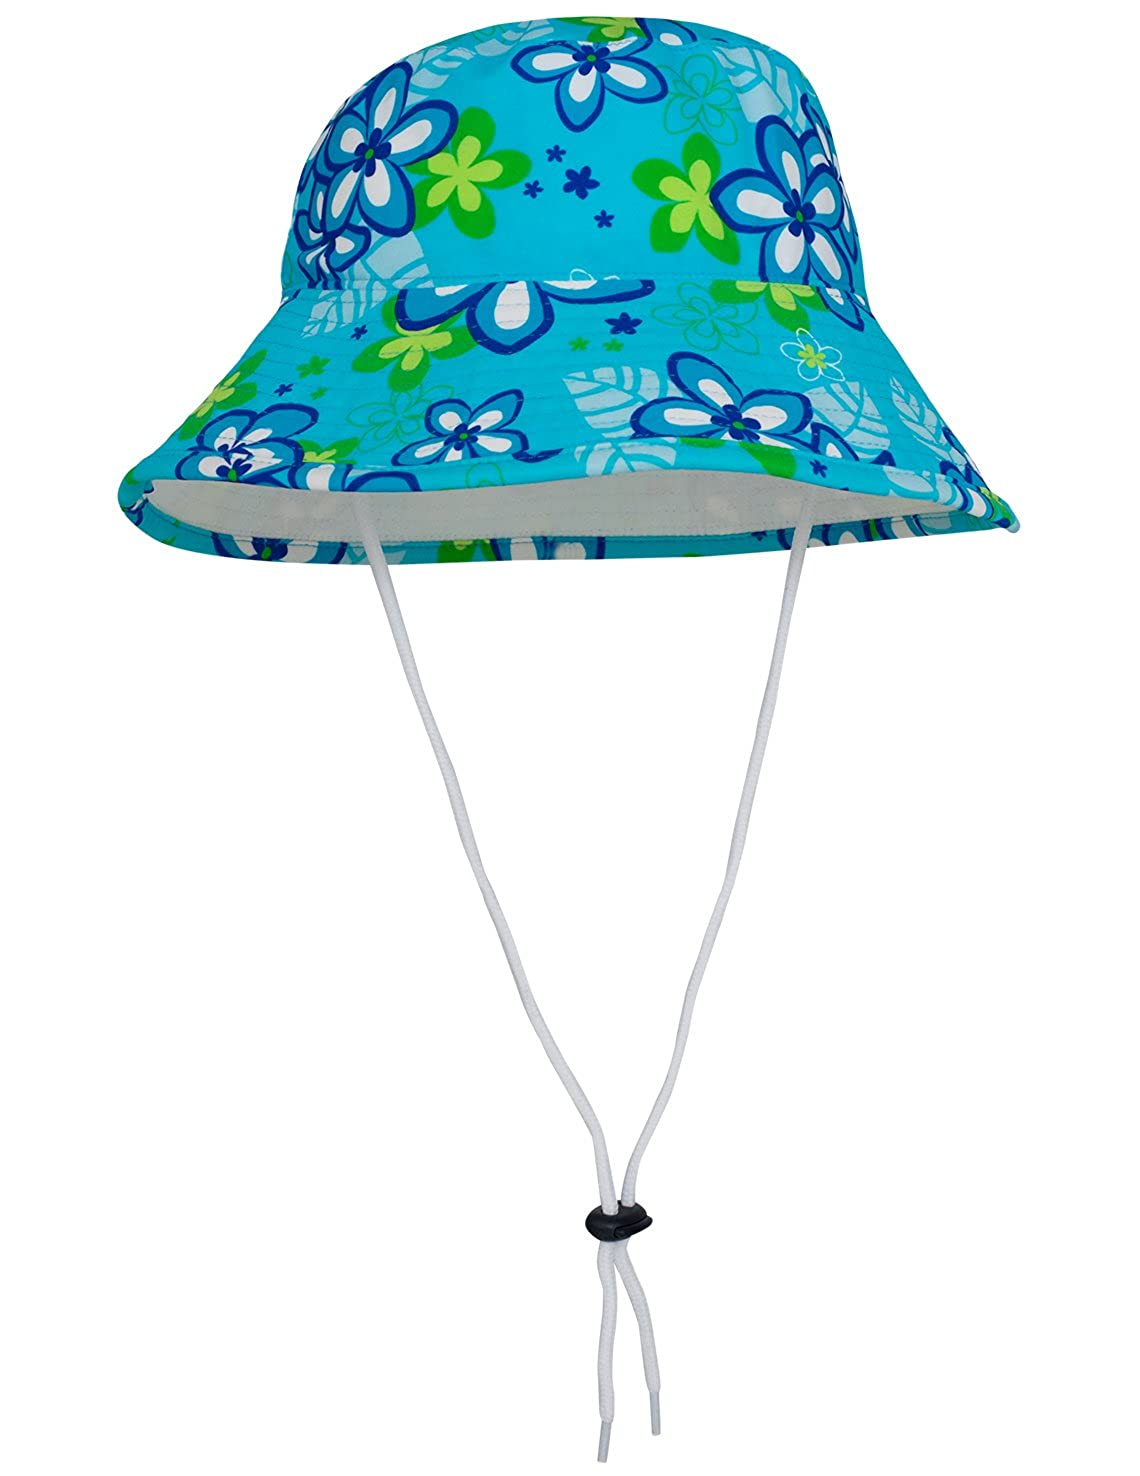 Our Tuga kids bucket swim hats provide excellent sun protection abcb710b2c26